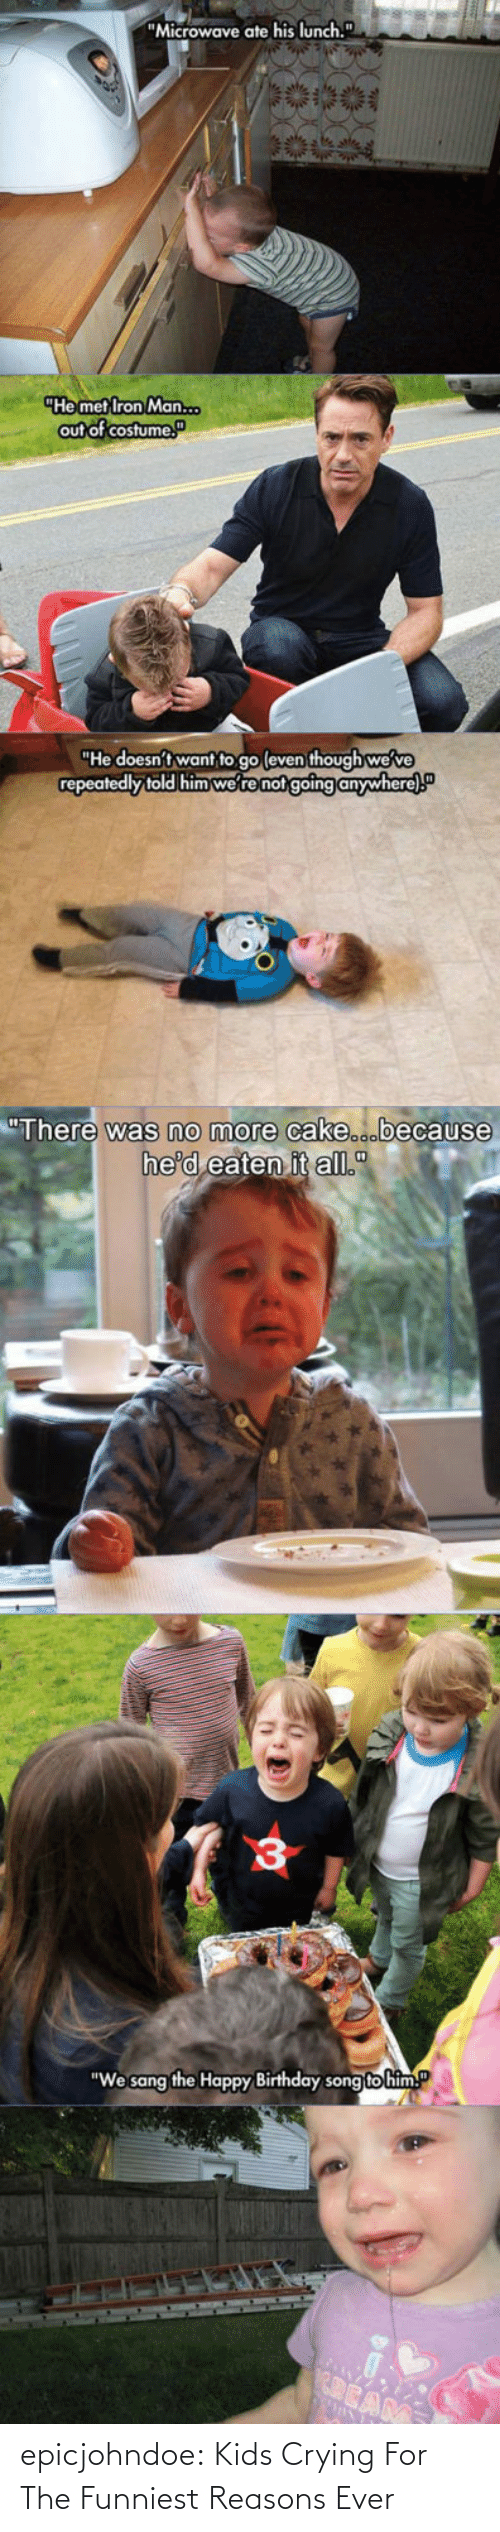 Crying: epicjohndoe:  Kids Crying For The Funniest Reasons Ever